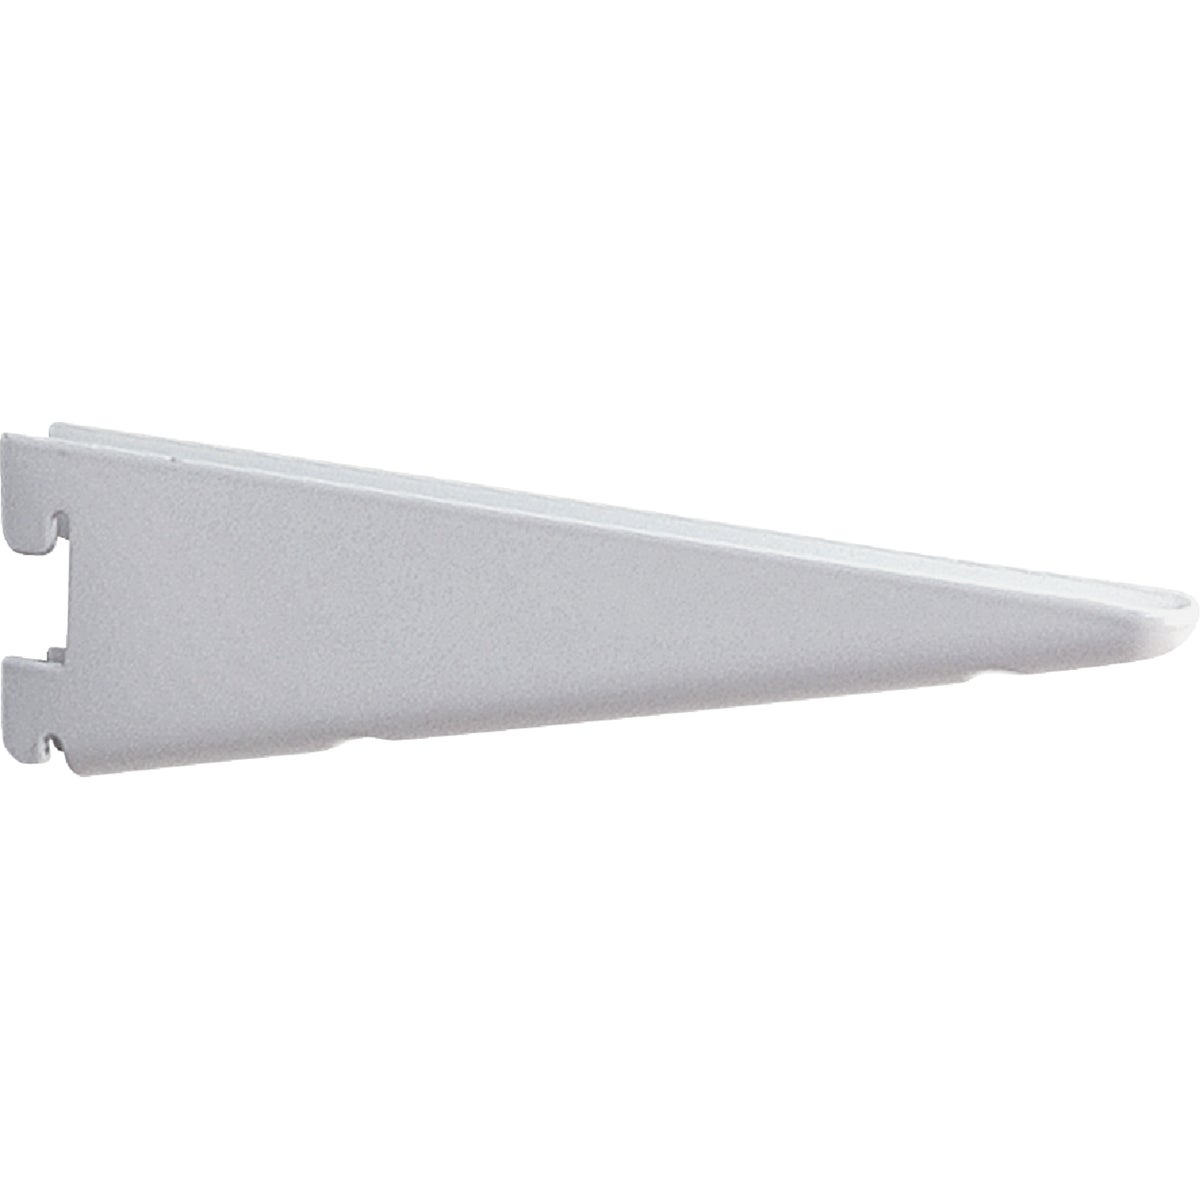 "12-1/2"" WHITE BRACKET - 182WH12.5 by Knape & Vogt Mfg Co"